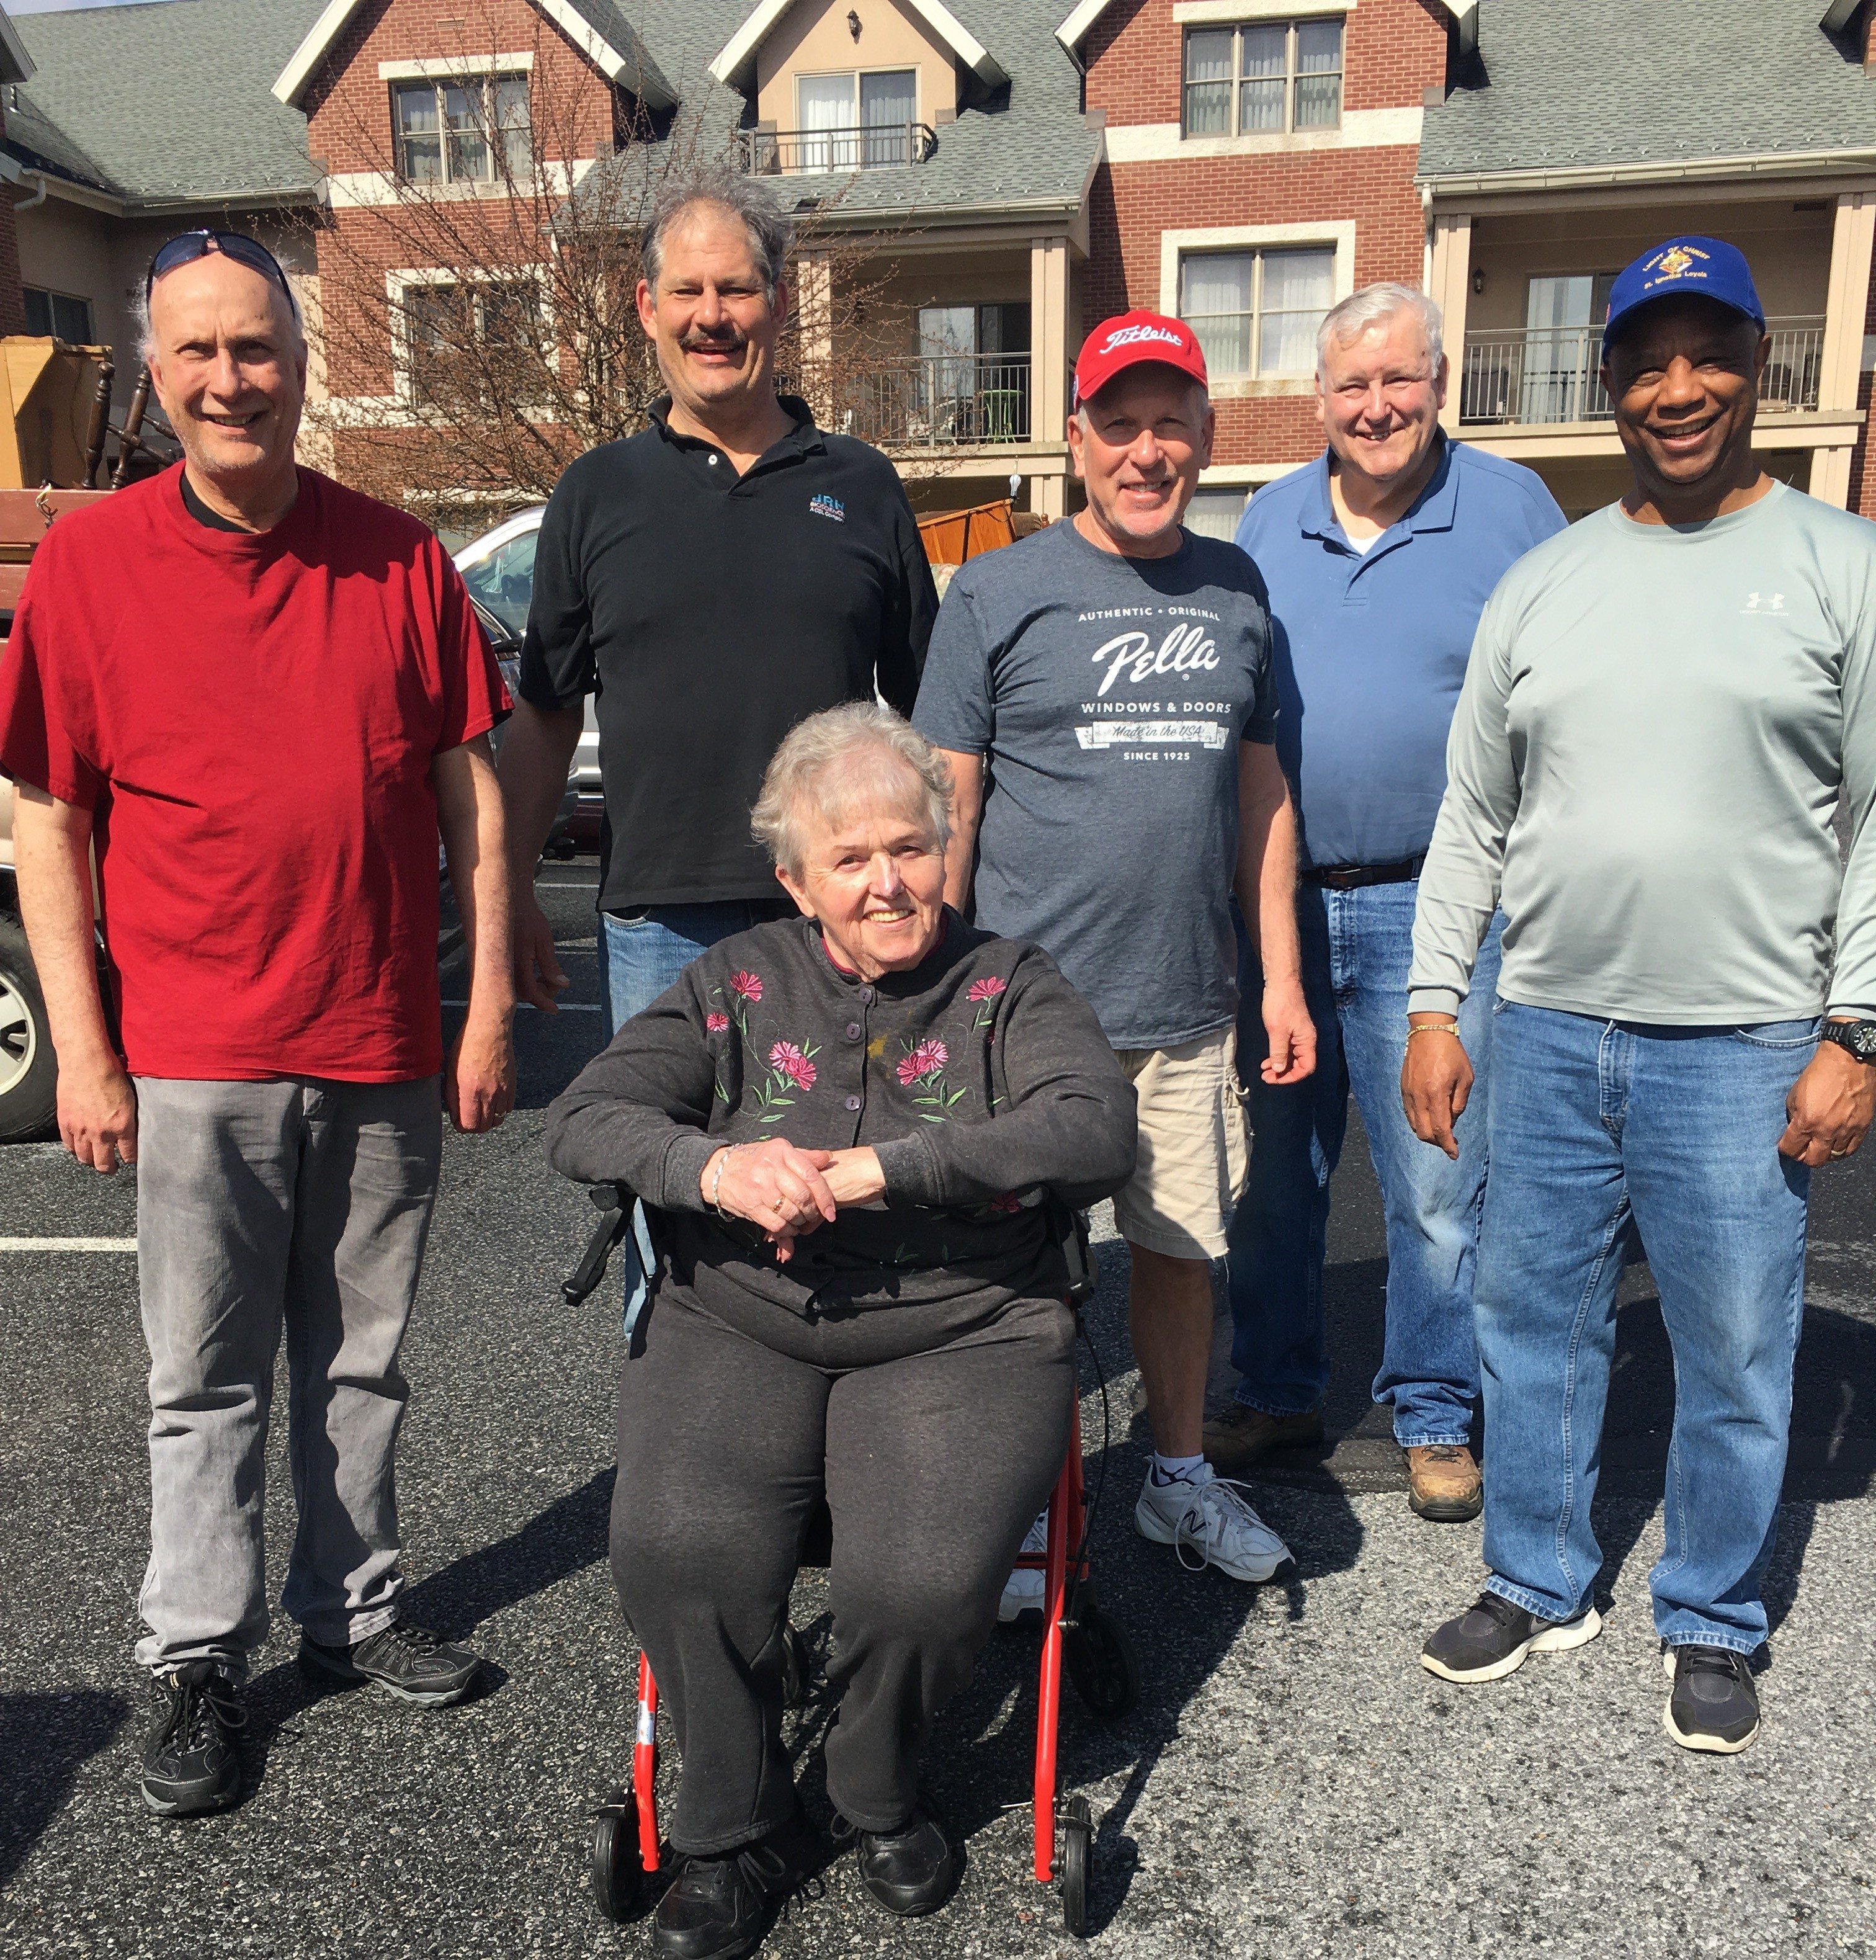 Members of the Knights helped the widow of one of our Knights move into a retirement home over the weekend.